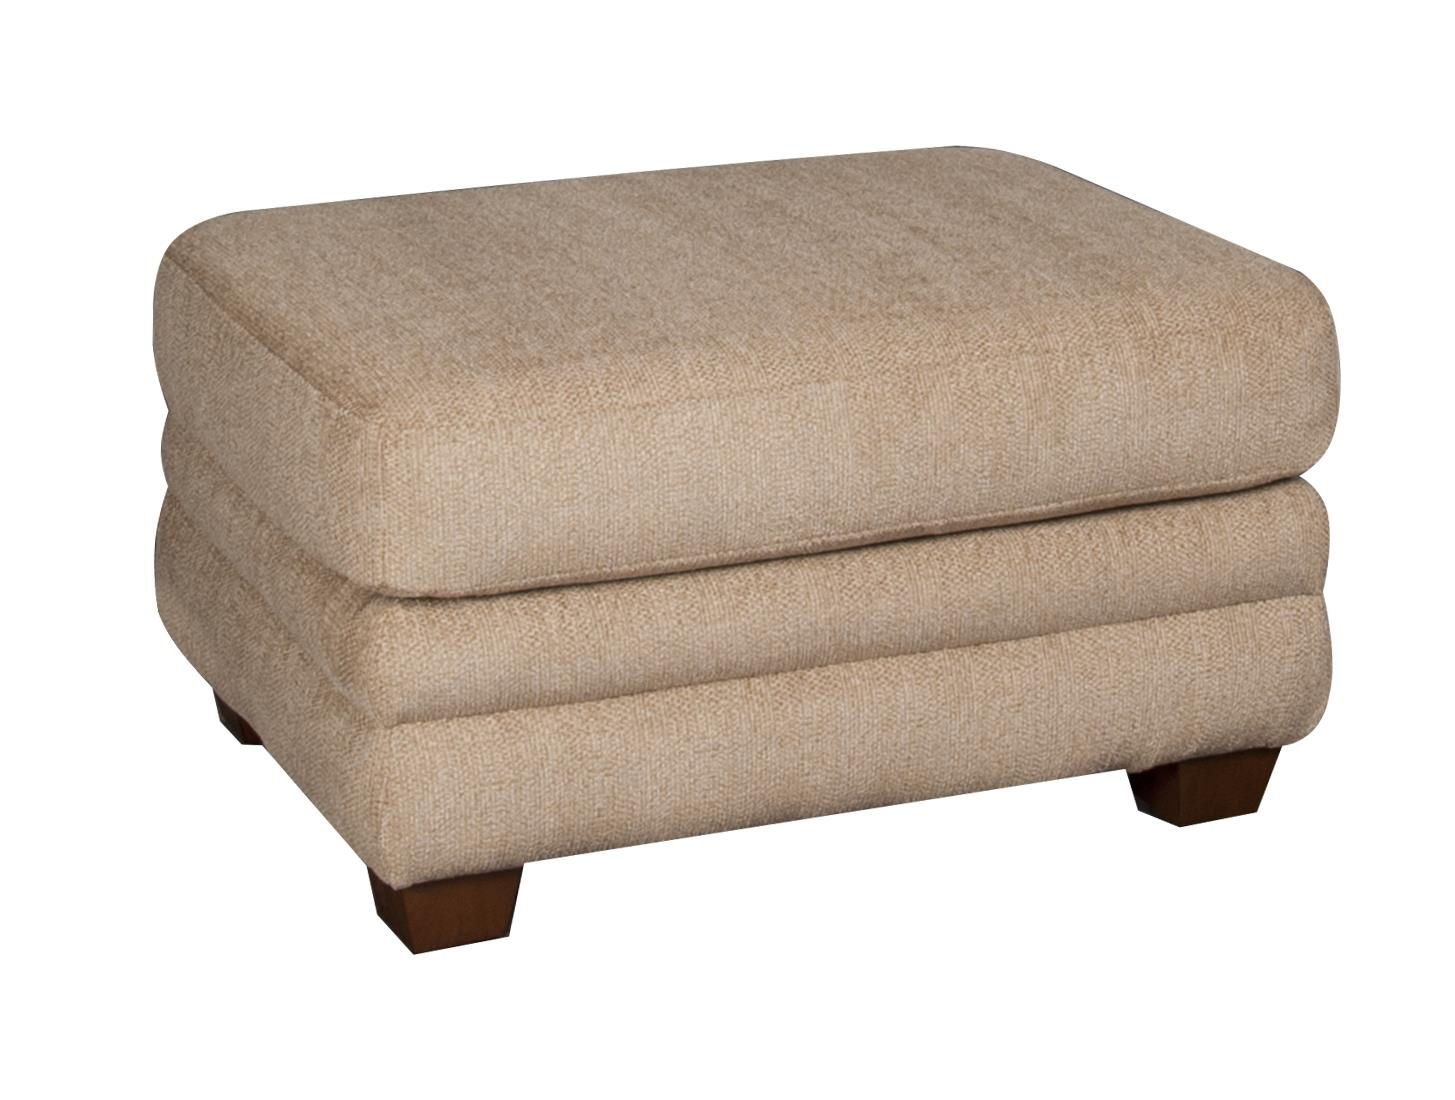 La-Z-Boy Natalie Natalie Chair Ottoman - Item Number: 316463423